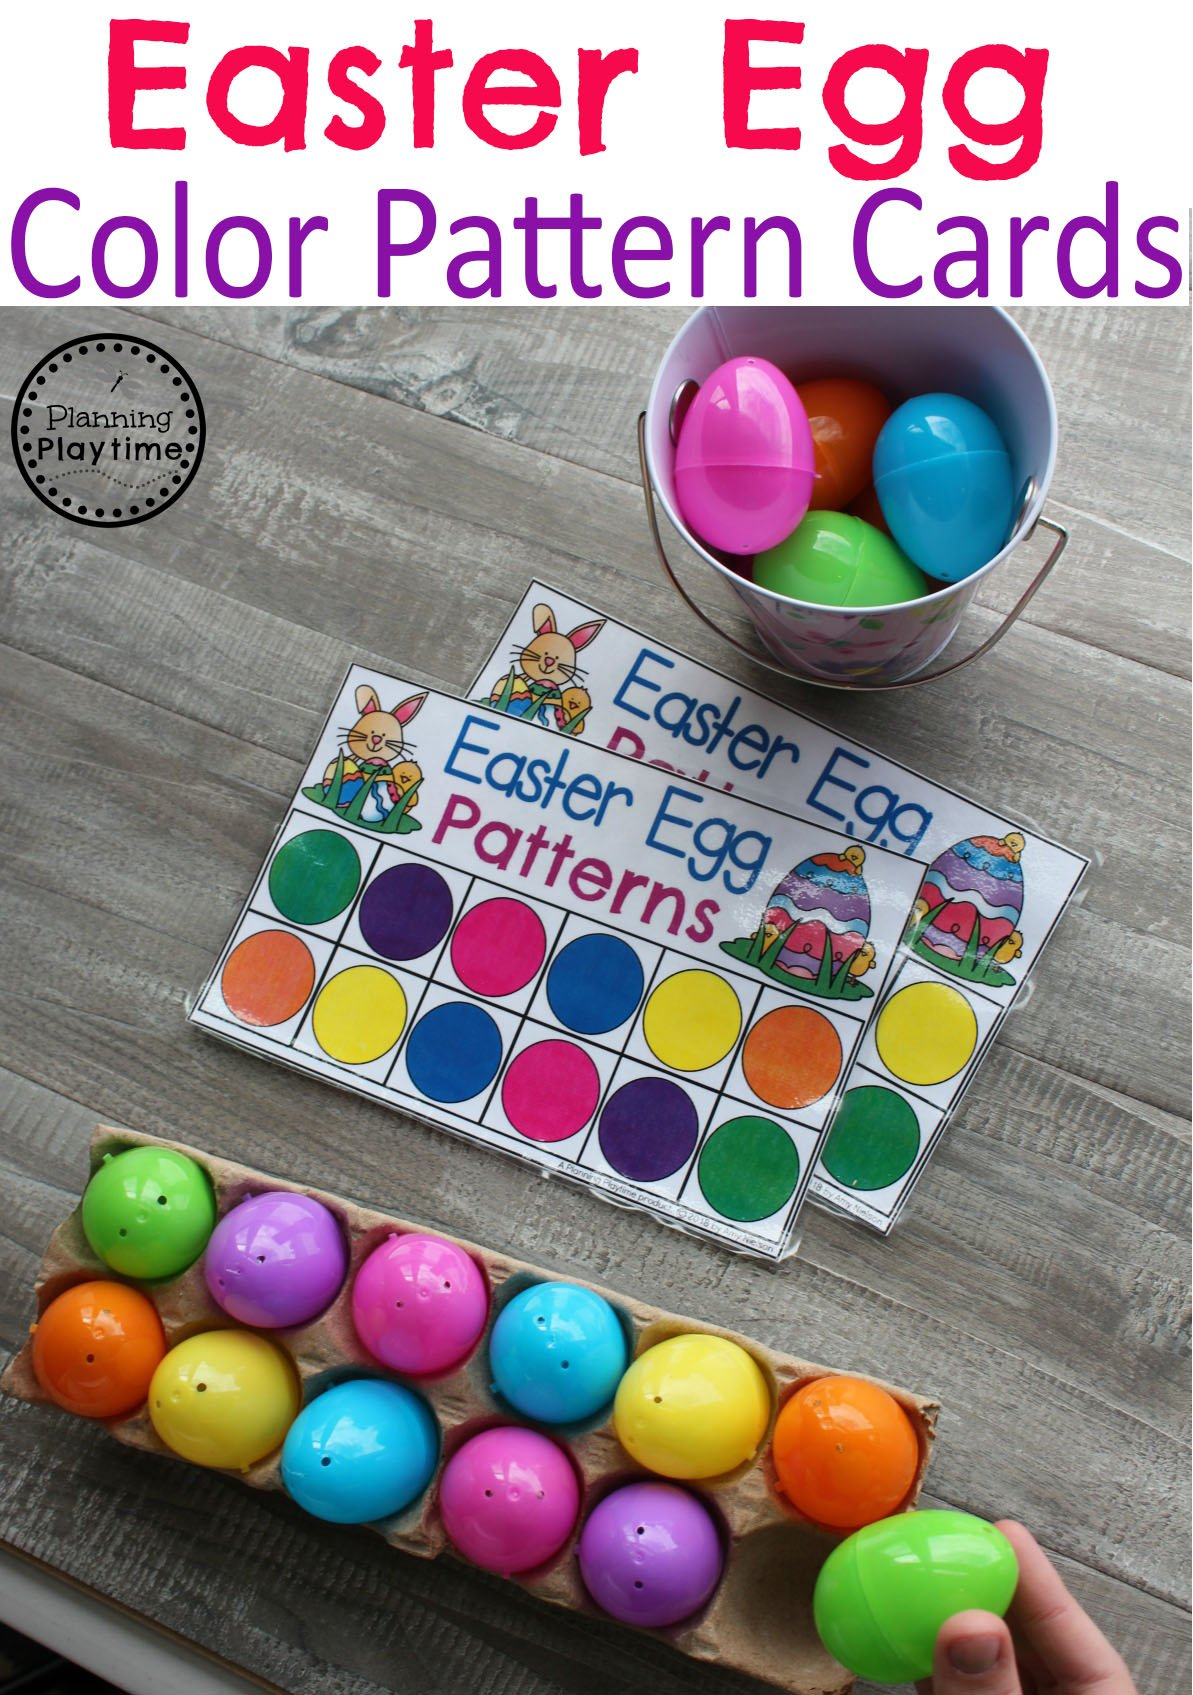 Easter Egg Color Pattern Cards for Preschool. #easter #preschool #easteractivities #easterpreschool #planningplaytime #patternsworksheets #preschoolpatterns